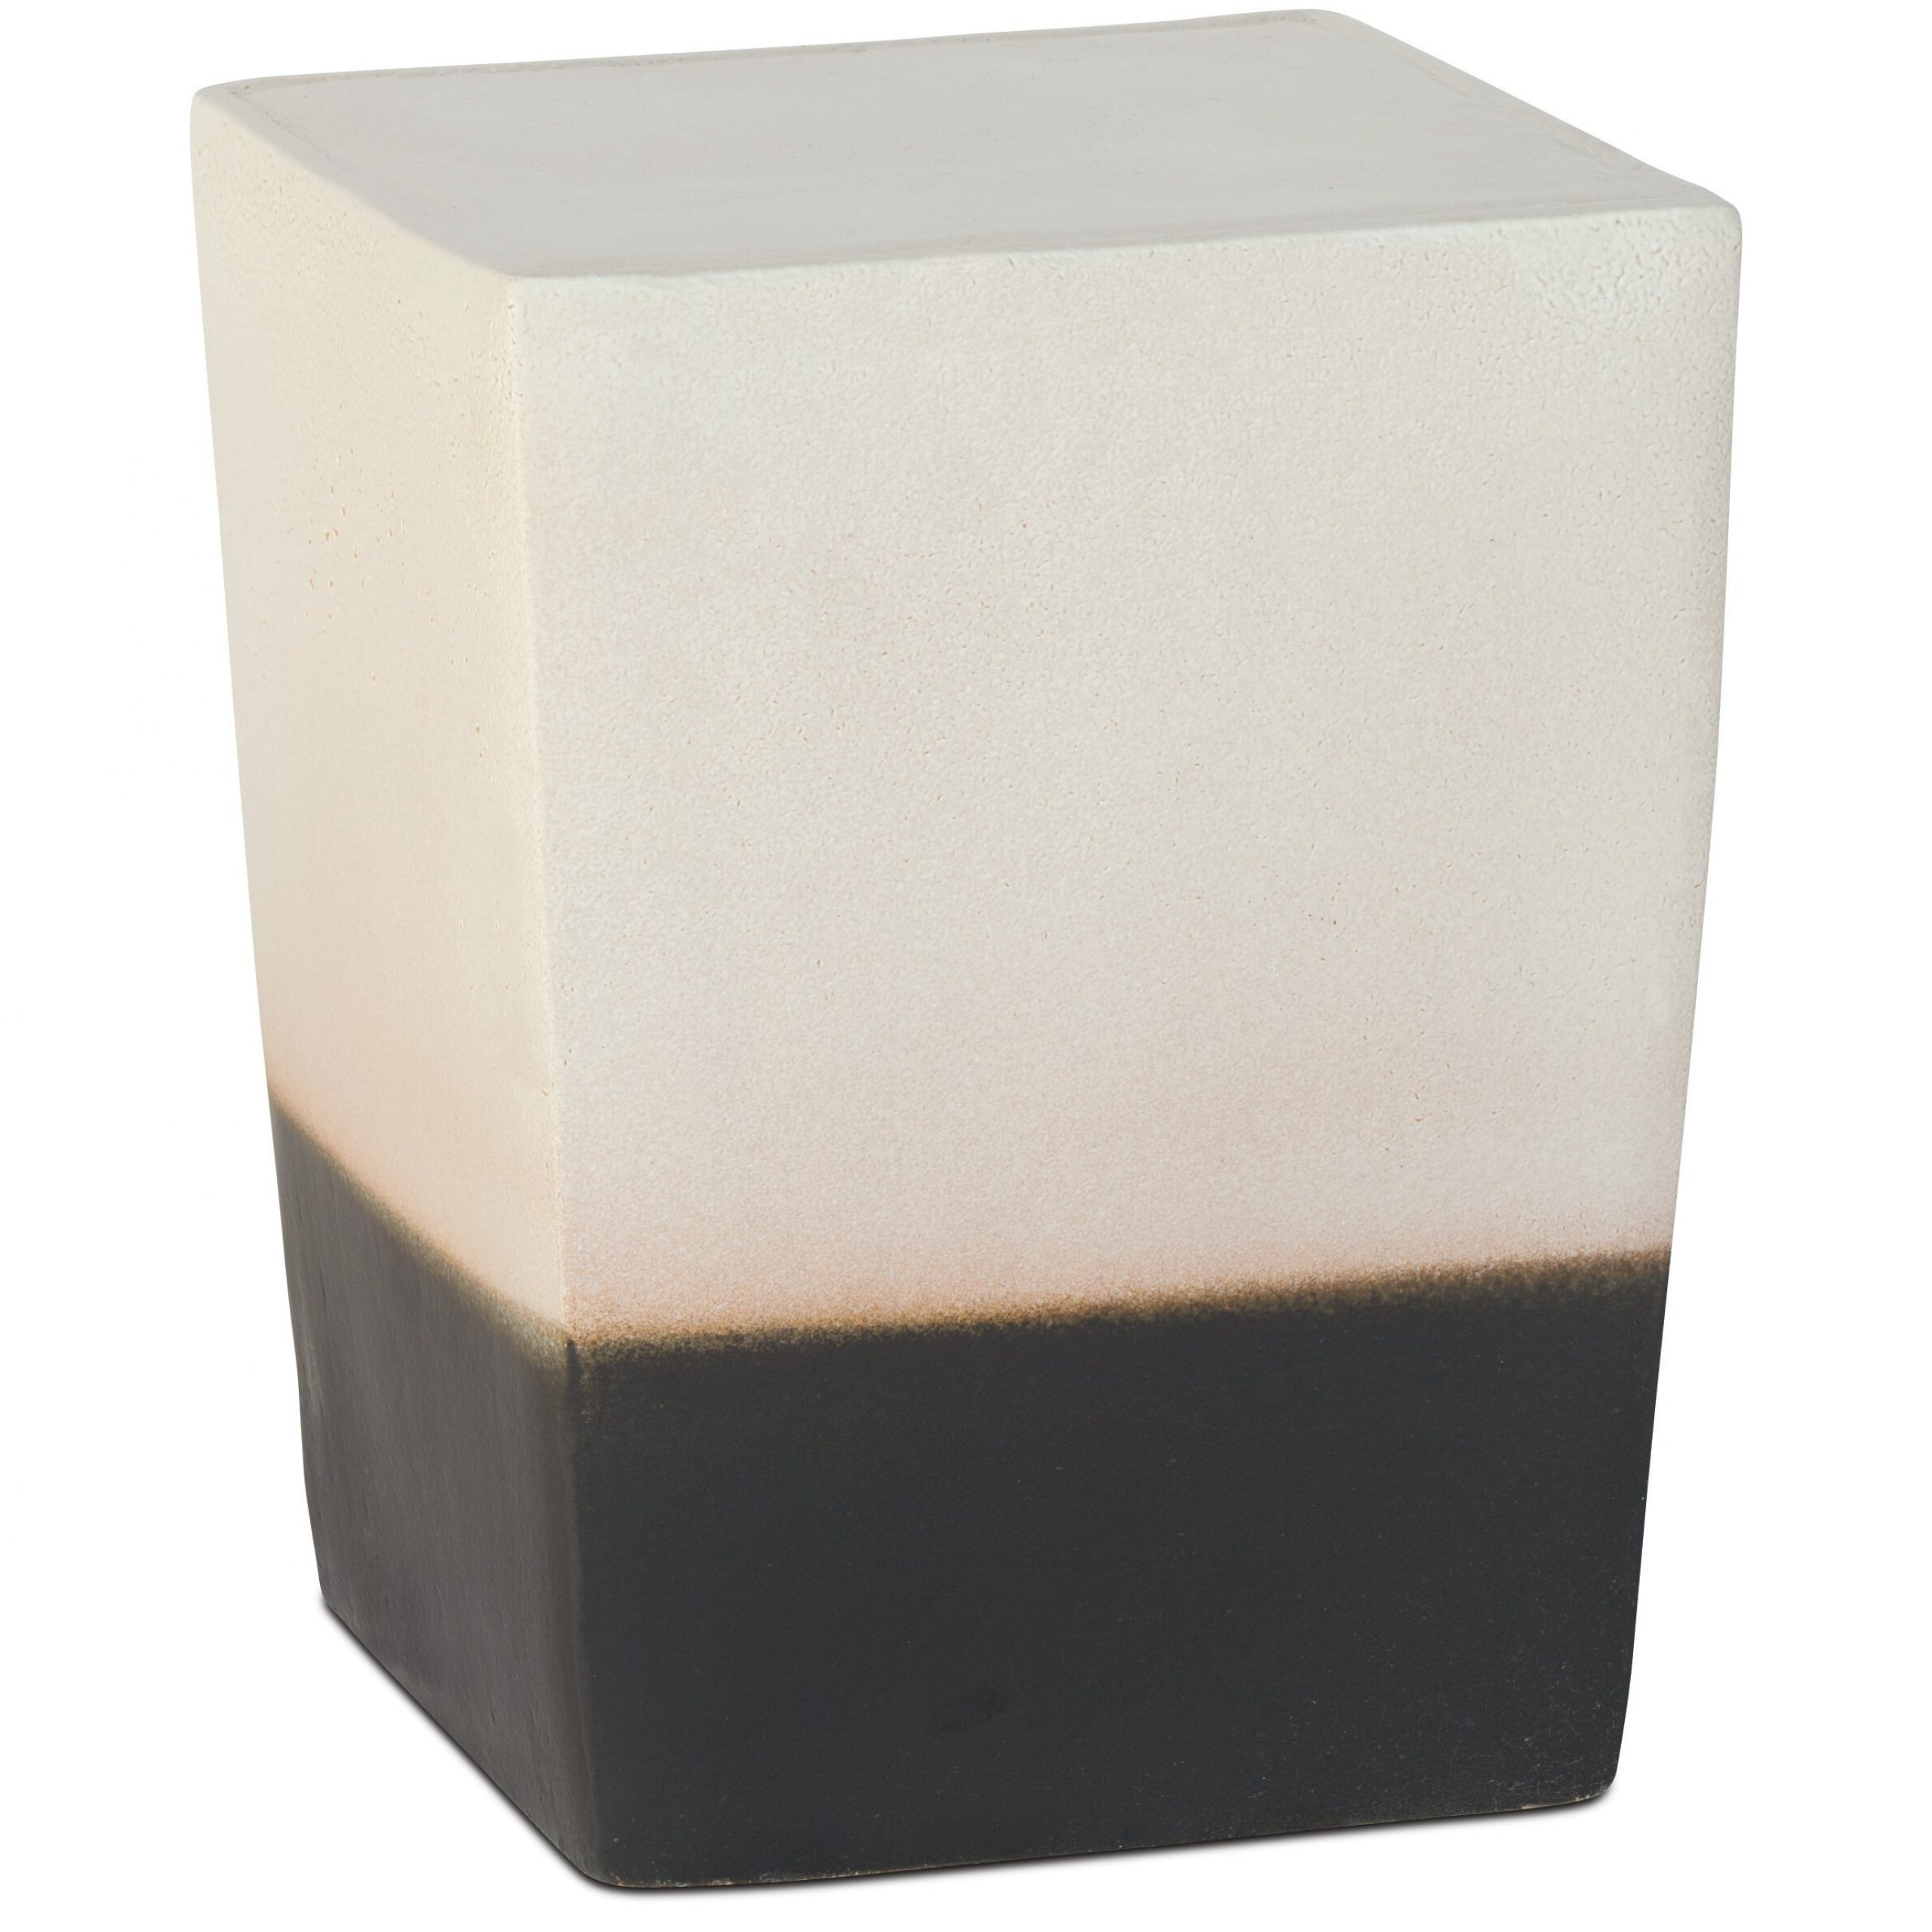 Low Luster 2 Glaze Garden Stool Pertaining To Best And Newest Jadiel Ceramic Garden Stools (View 24 of 30)